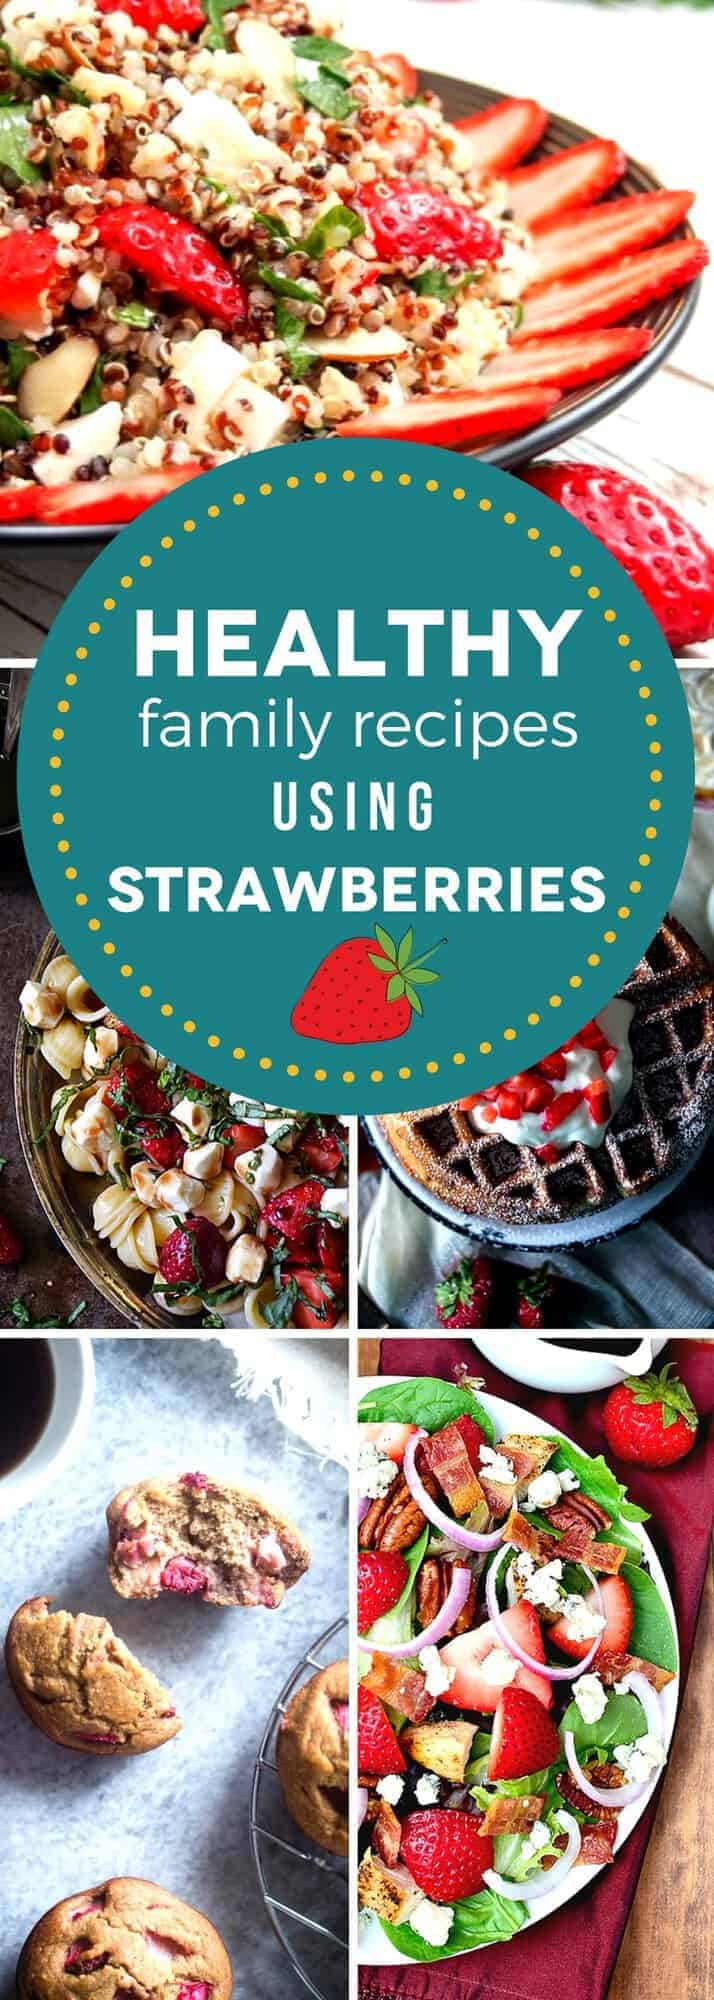 Show your family that healthy can be delicious with our favorite healthy family recipes using strawberries! Strawberries work in both sweet and savory dishes, and they're good for you, too. These healthy family recipes highlight strawberry dishes from breakfast to dessert, so that you and your family can enjoy them all season long! #SundaySupper #strawberryrecipes #strawberryseason #healthyrecipes